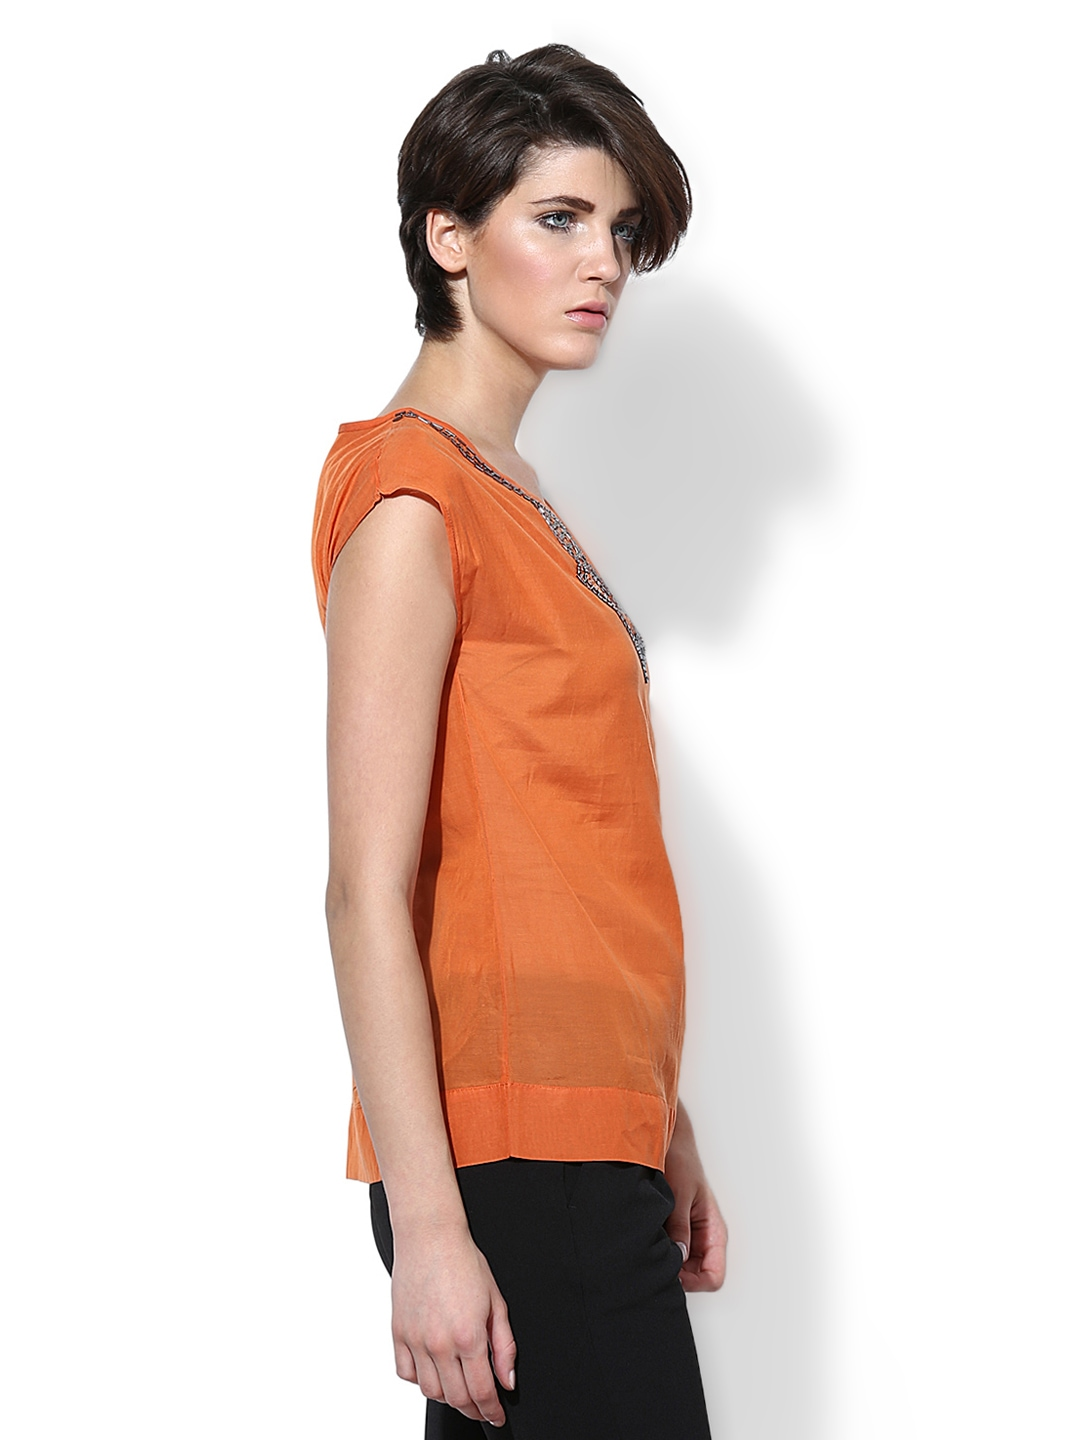 Find a great selection of Orange women's tops and blouses at Dillards. Offered in the latest styles and materials from tunics, tanks, camisoles and poncho Dillards has you covered.